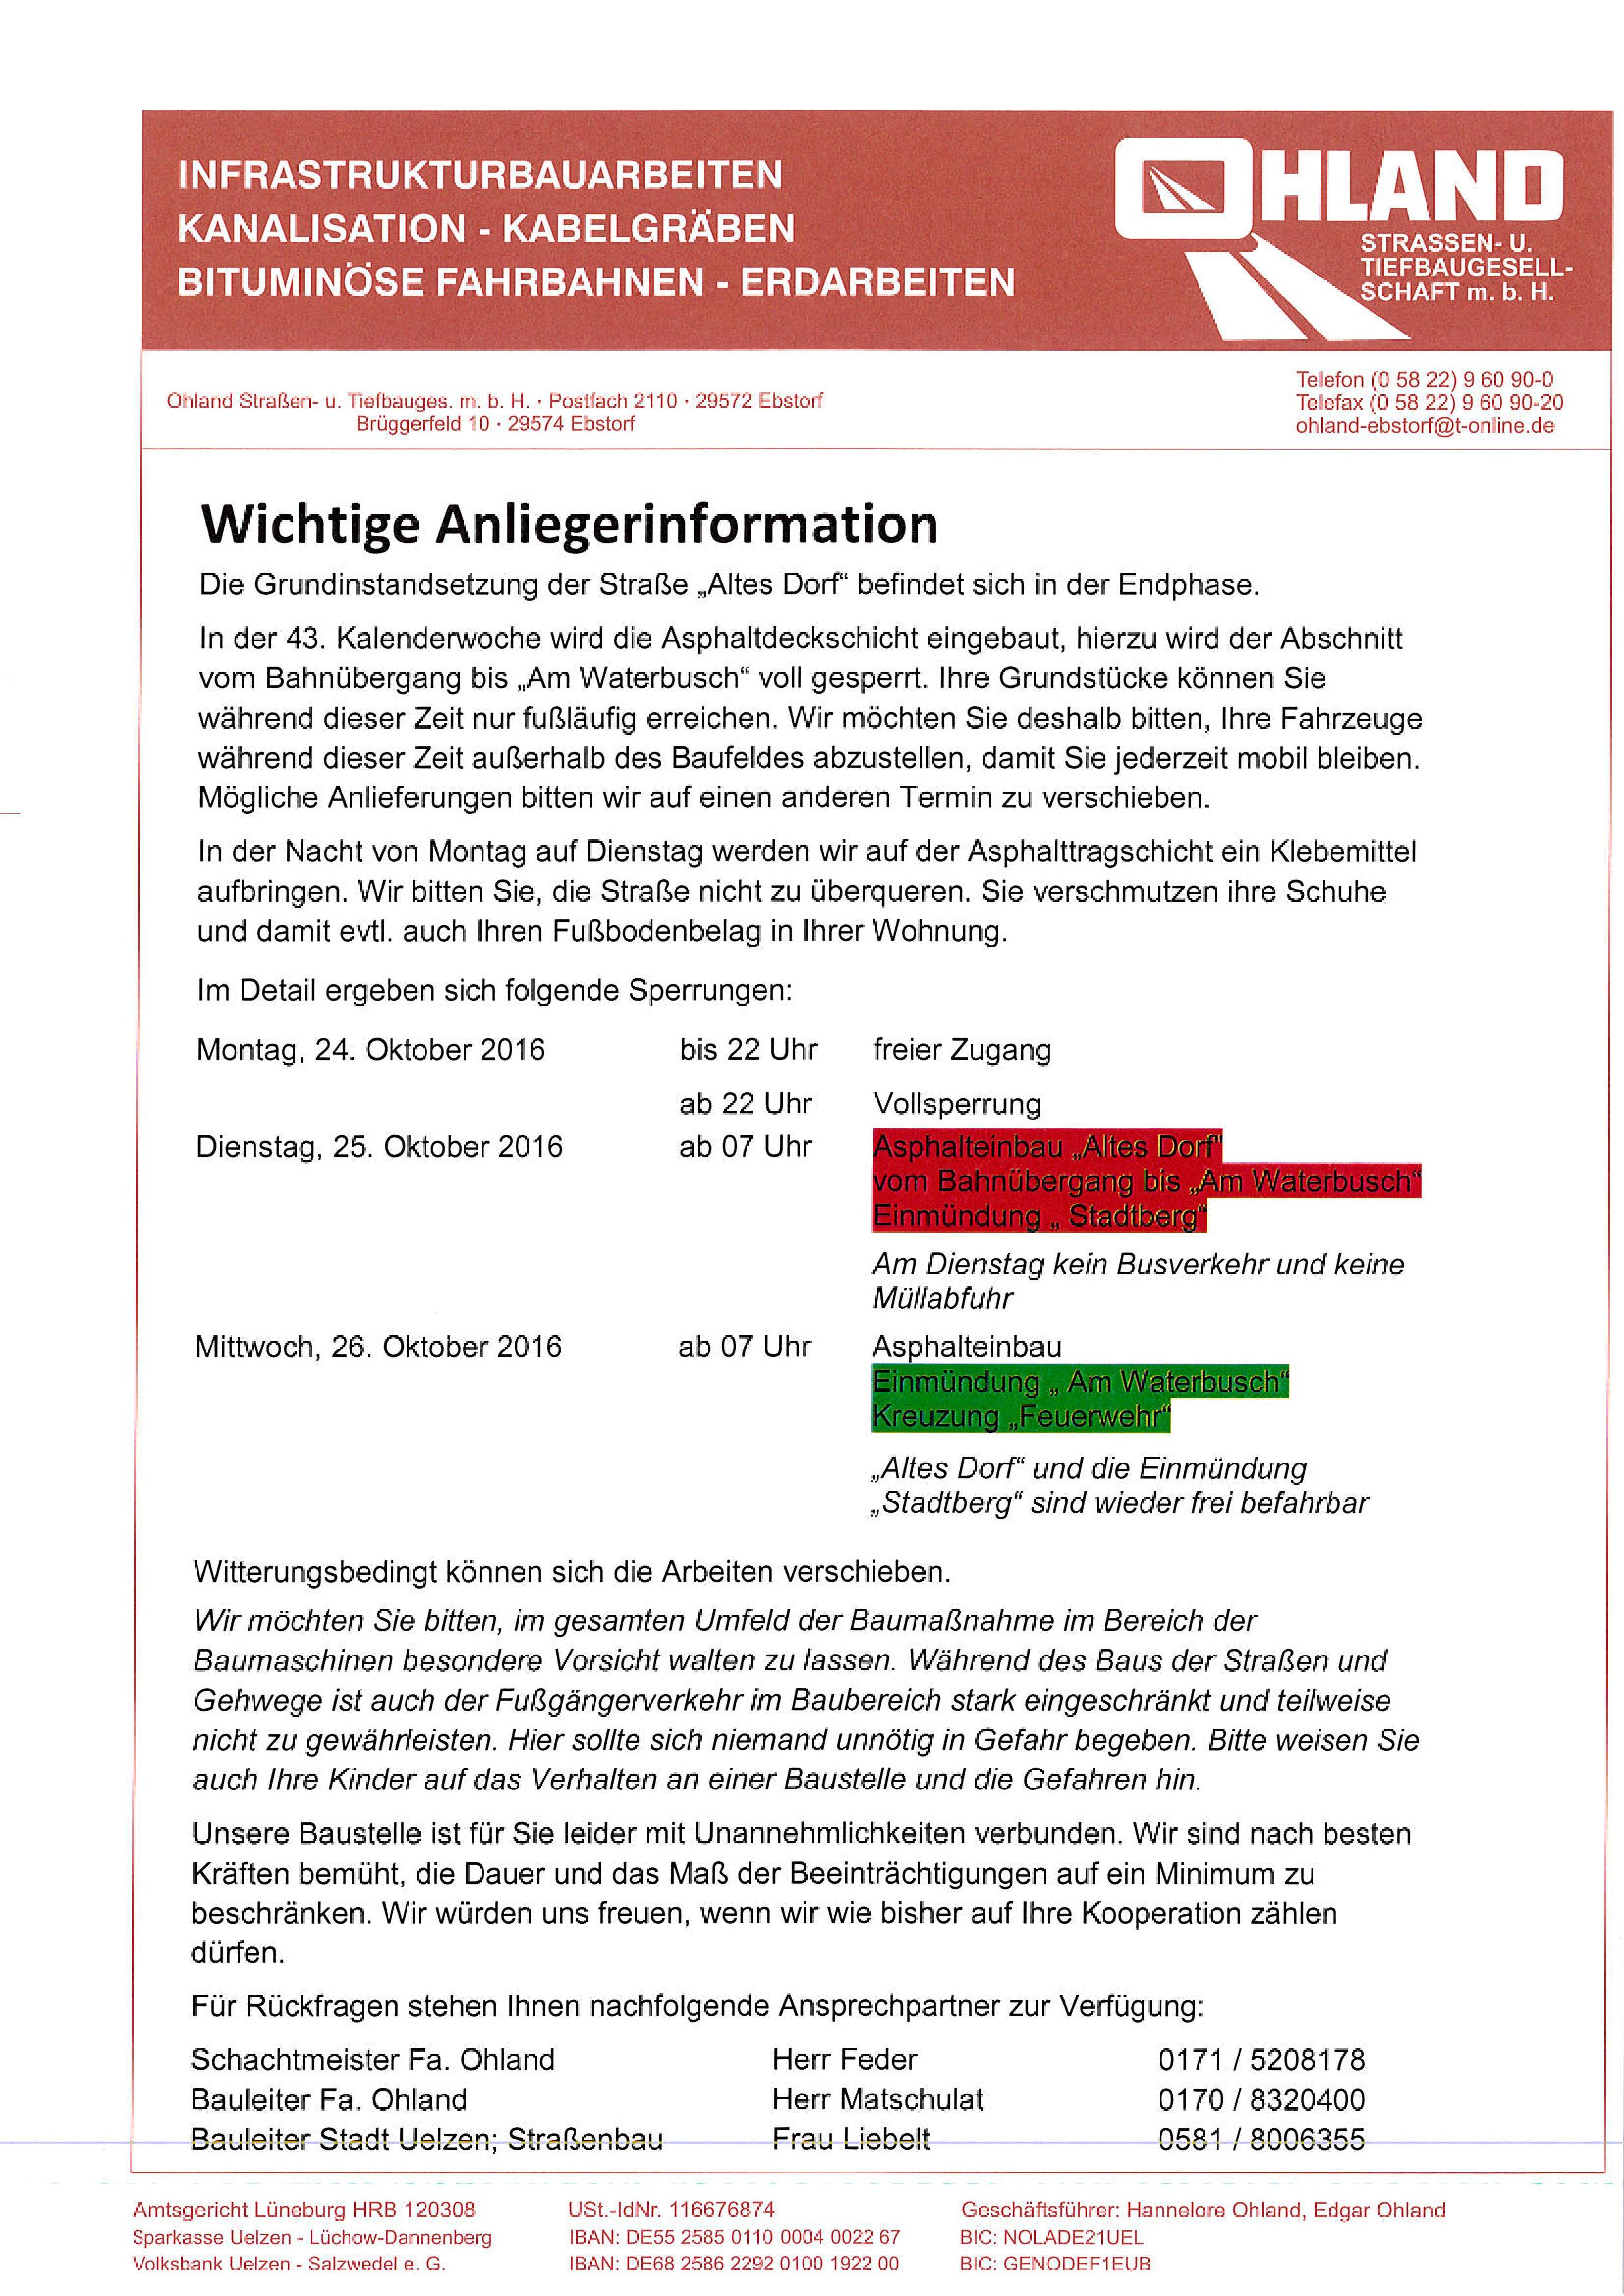 anliegerinfo_westerweyhe_13.10.2016-page-001.jpg